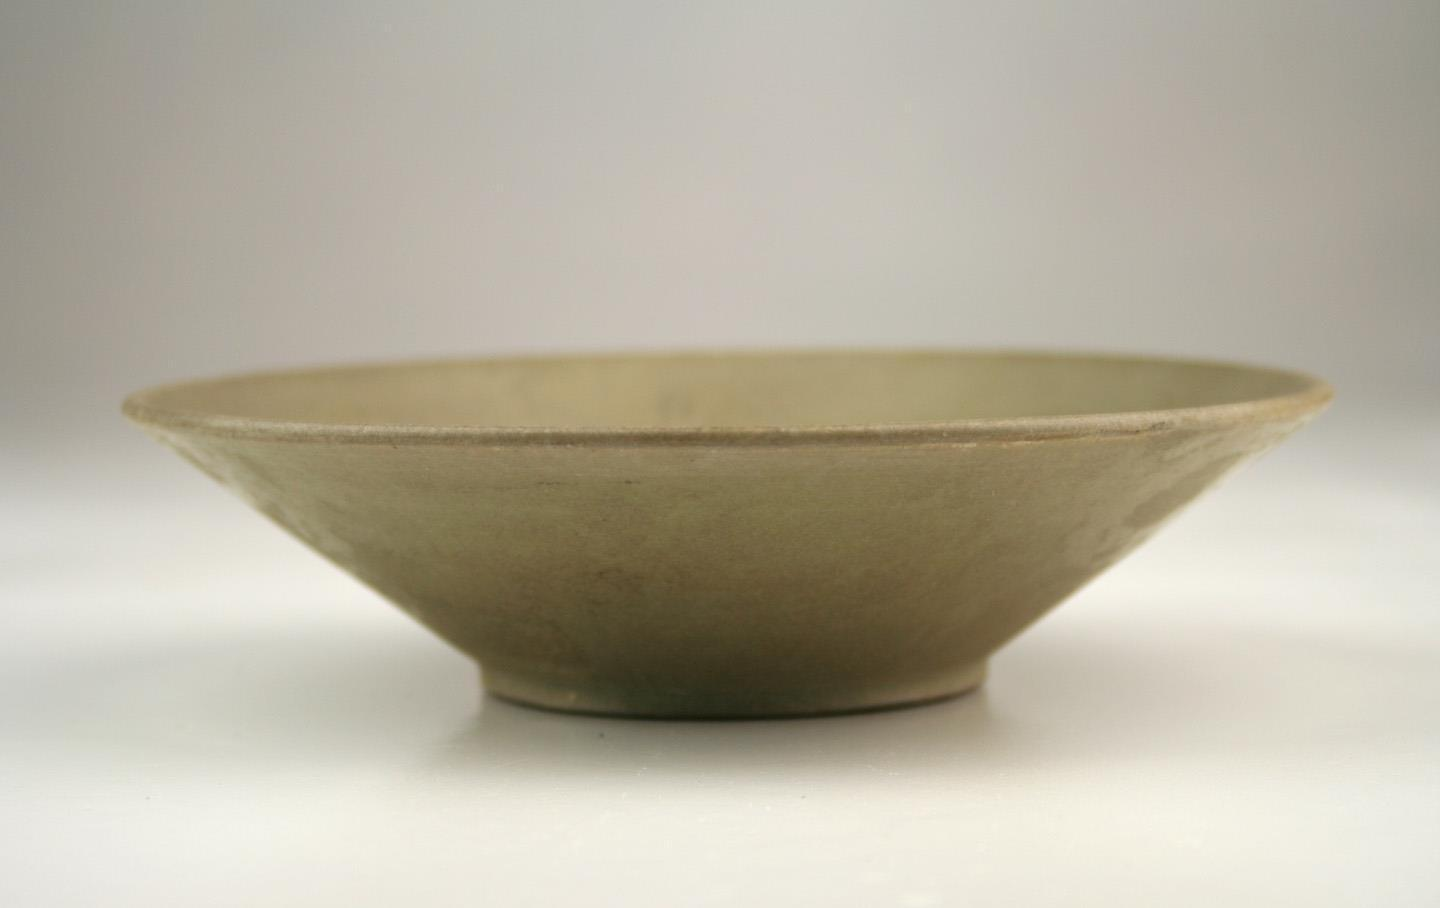 Antique Chinese 9thc Tang Yue Celadon Greenware Bowl With Bi Foot Base Antique Chinese